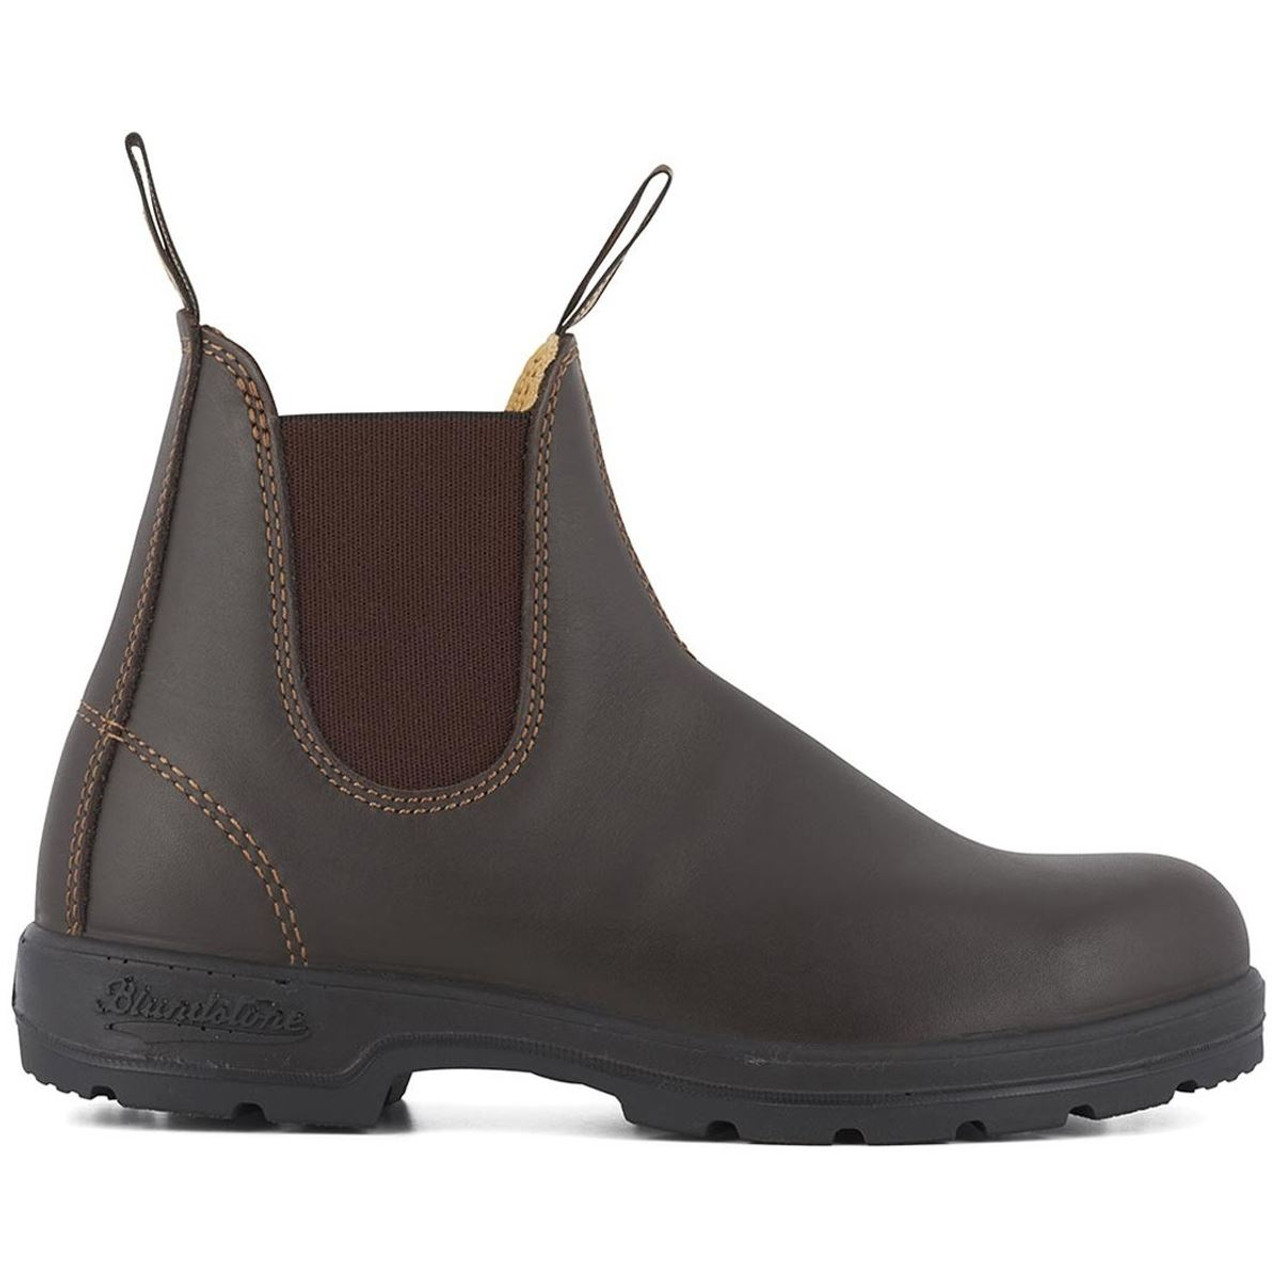 Blundstone Comfort 550 Round Toe Chelsea Boots